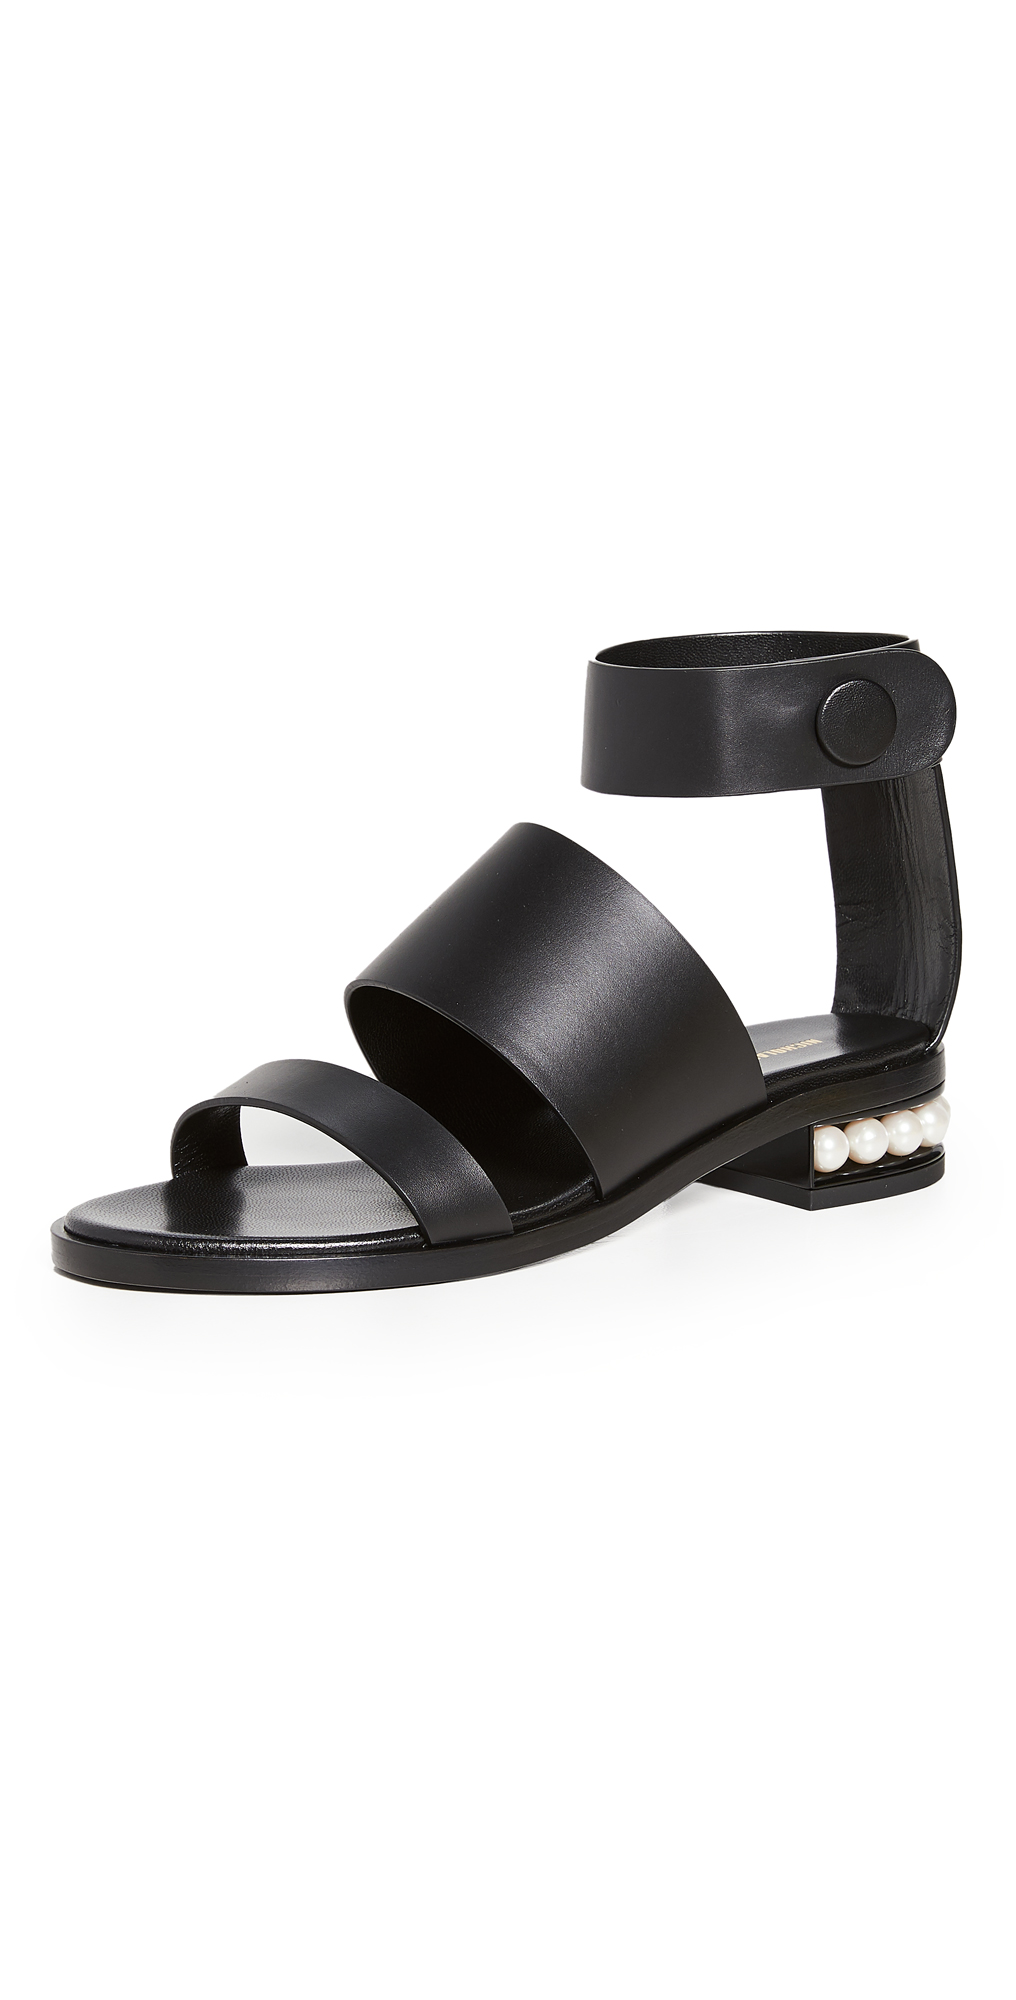 Nicholas Kirkwood Low heels 25MM TRIPLE STRAP SANDALS